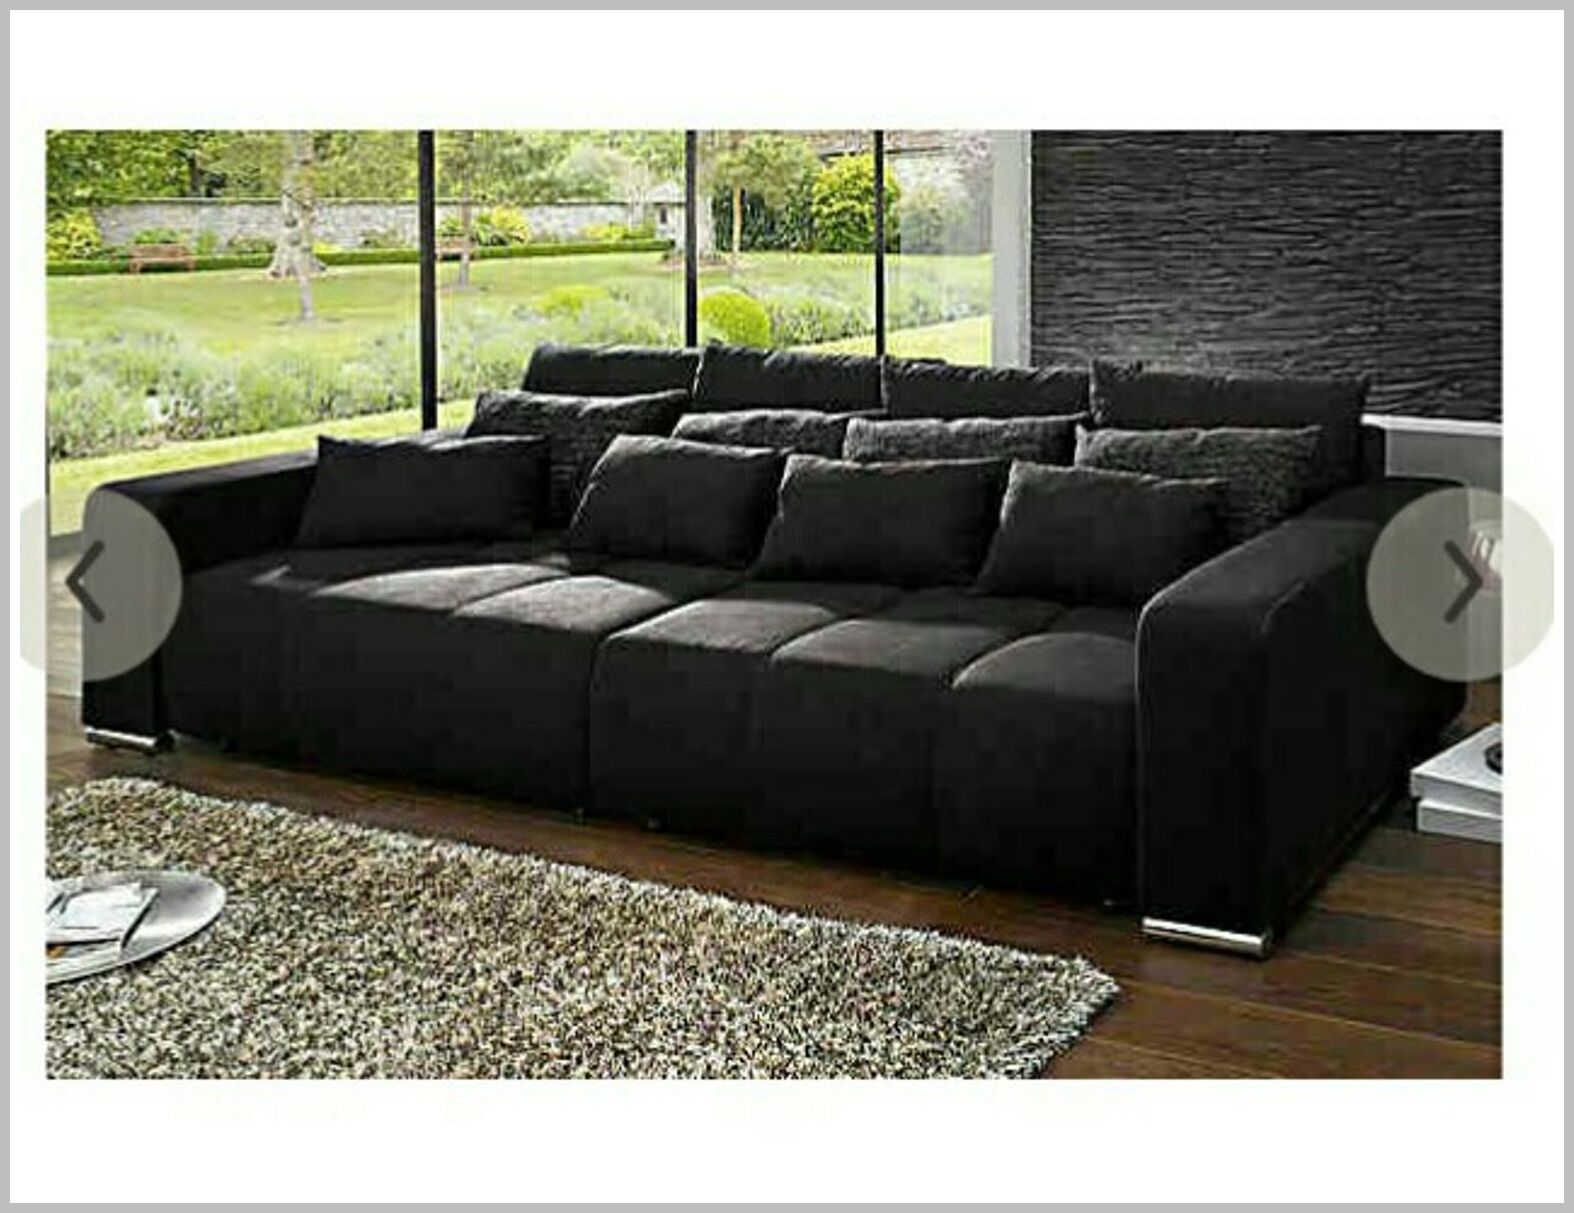 33 Reference Of Sofa Grau Oversized In 2020 Big Sofas Sofa Sofas For Small Spaces